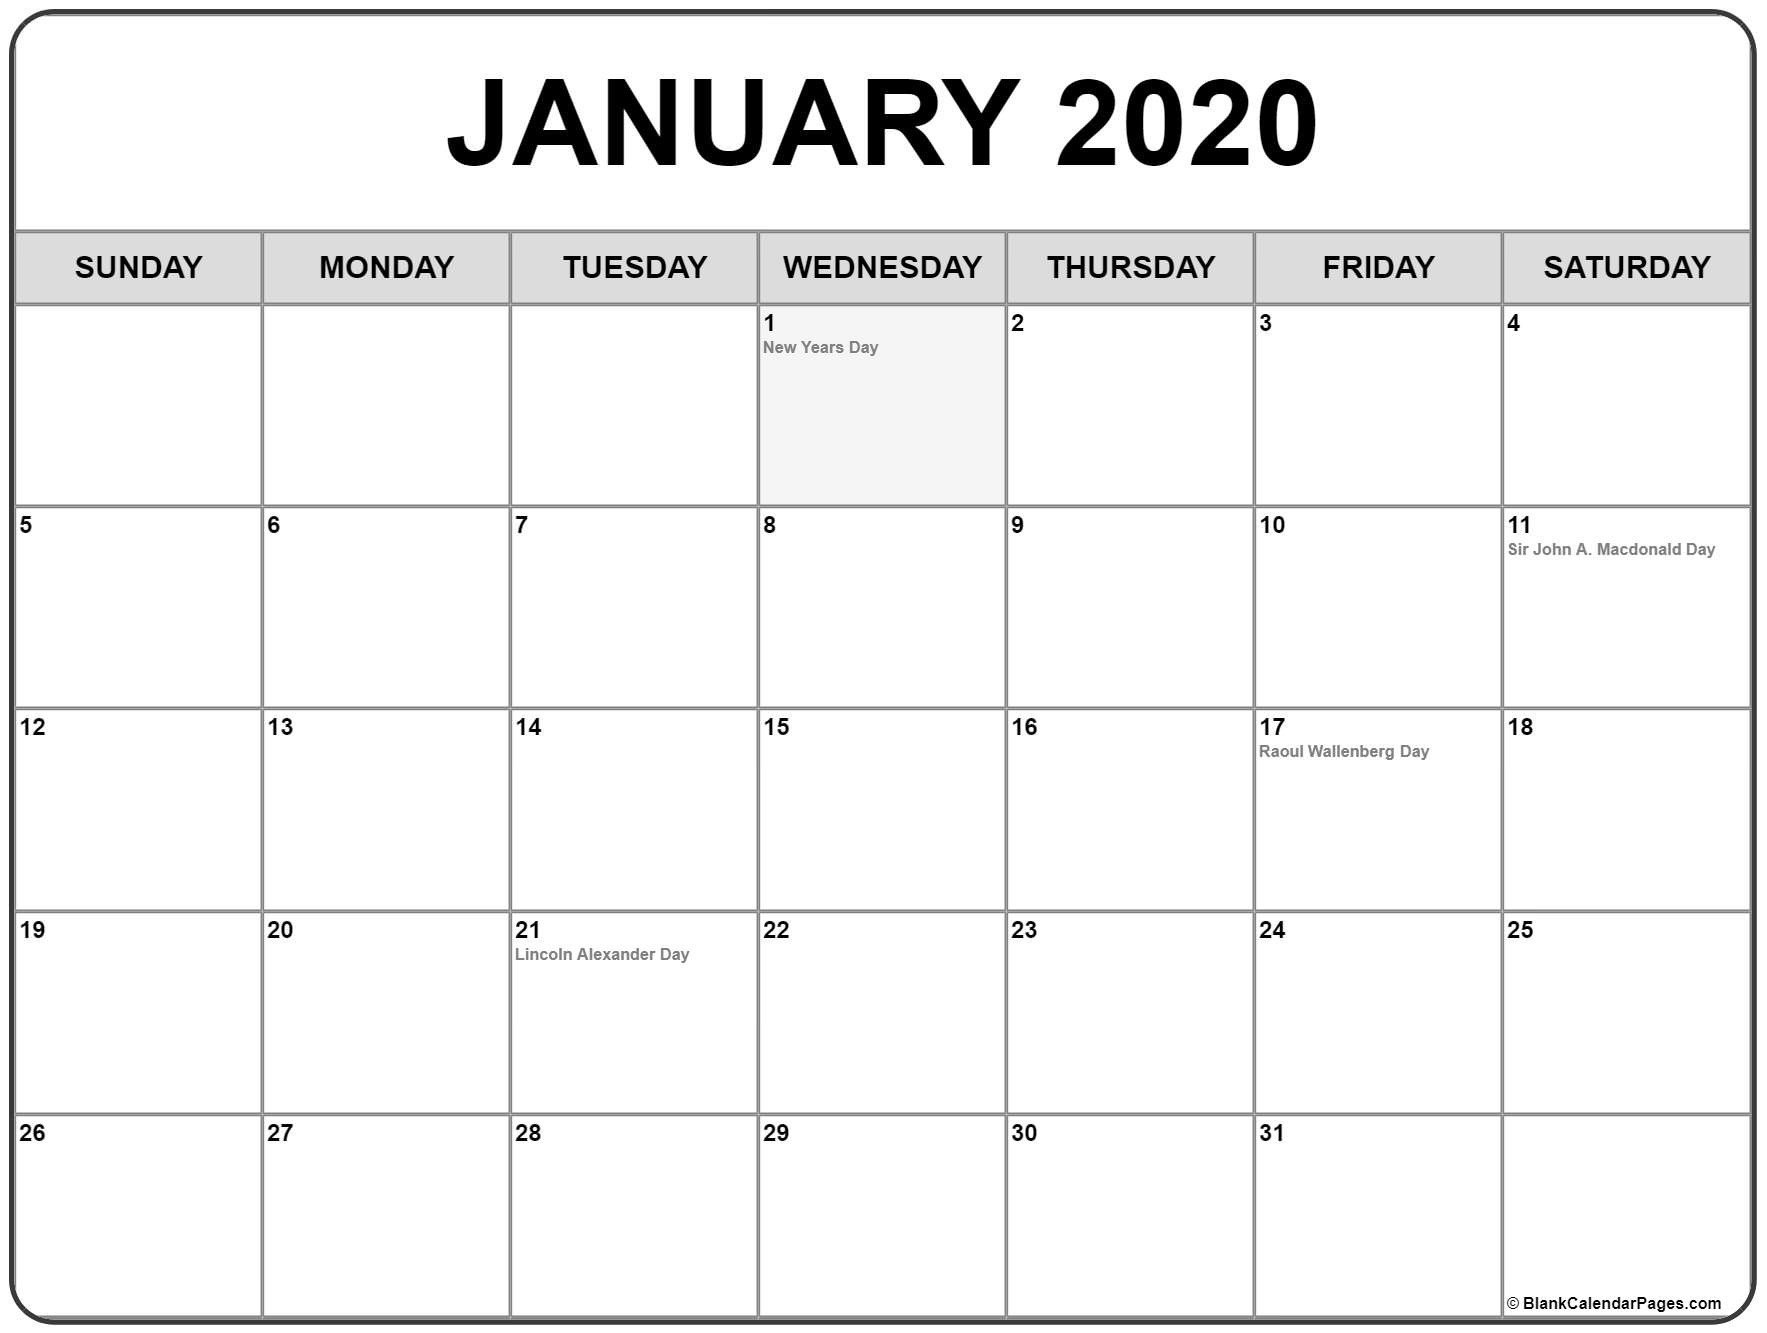 Exceptional 2020 Calendar Showing Holidays • Printable Blank-Calendar Indicating The Holidays